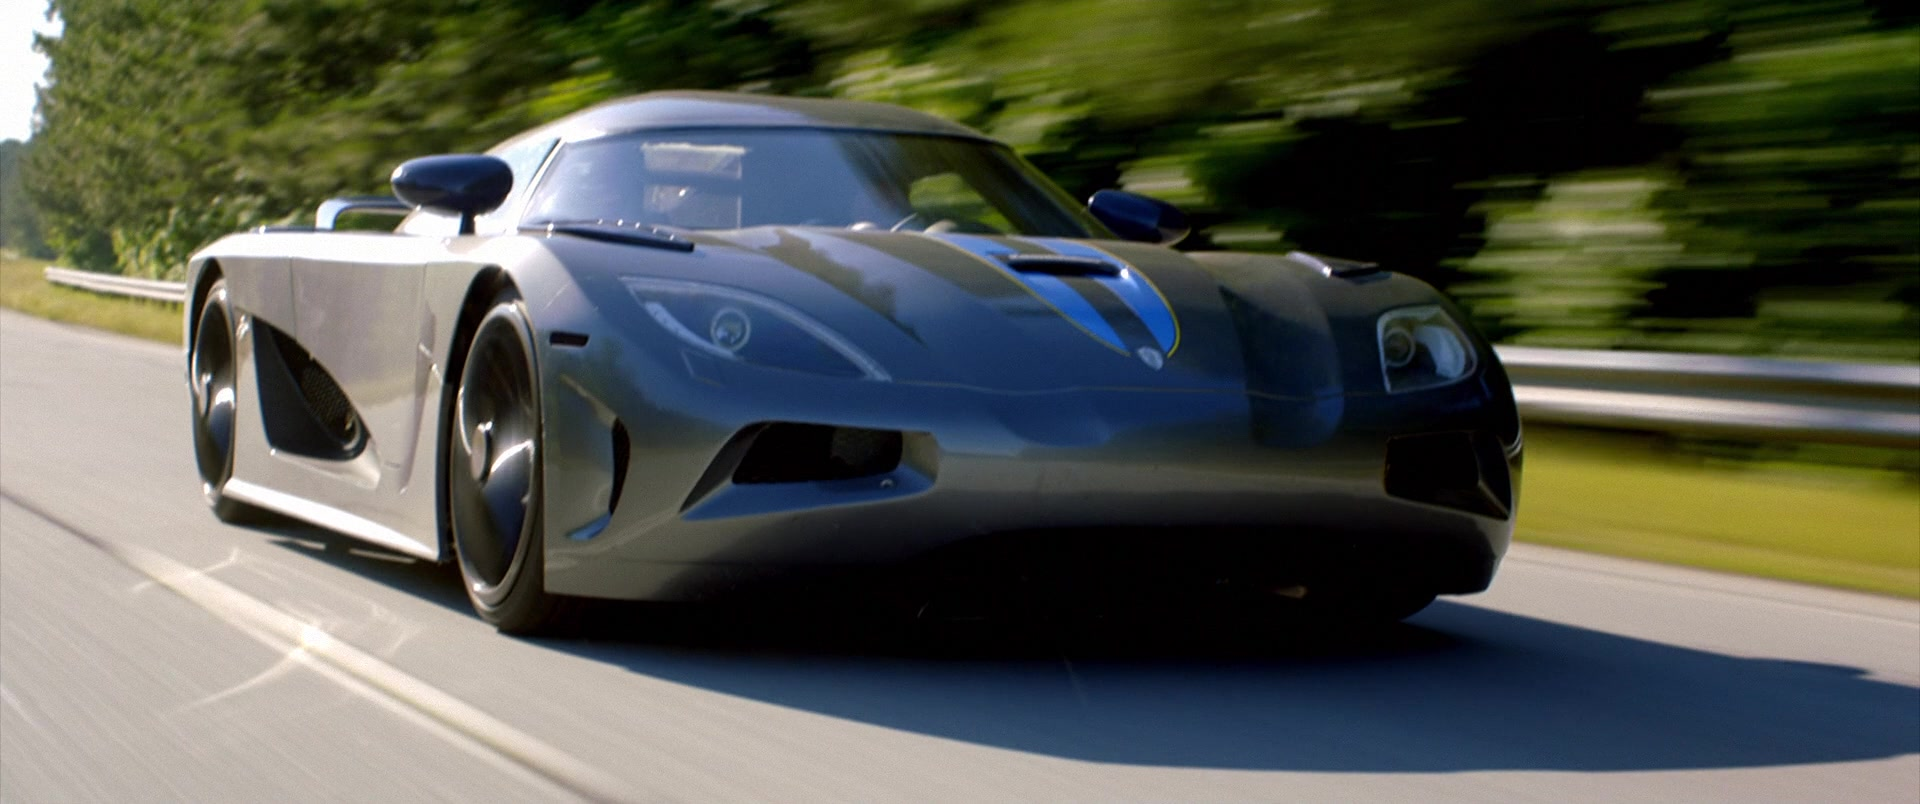 Koenigsegg Agera Grey Sports Car Driven by Aaron Paul in Need for